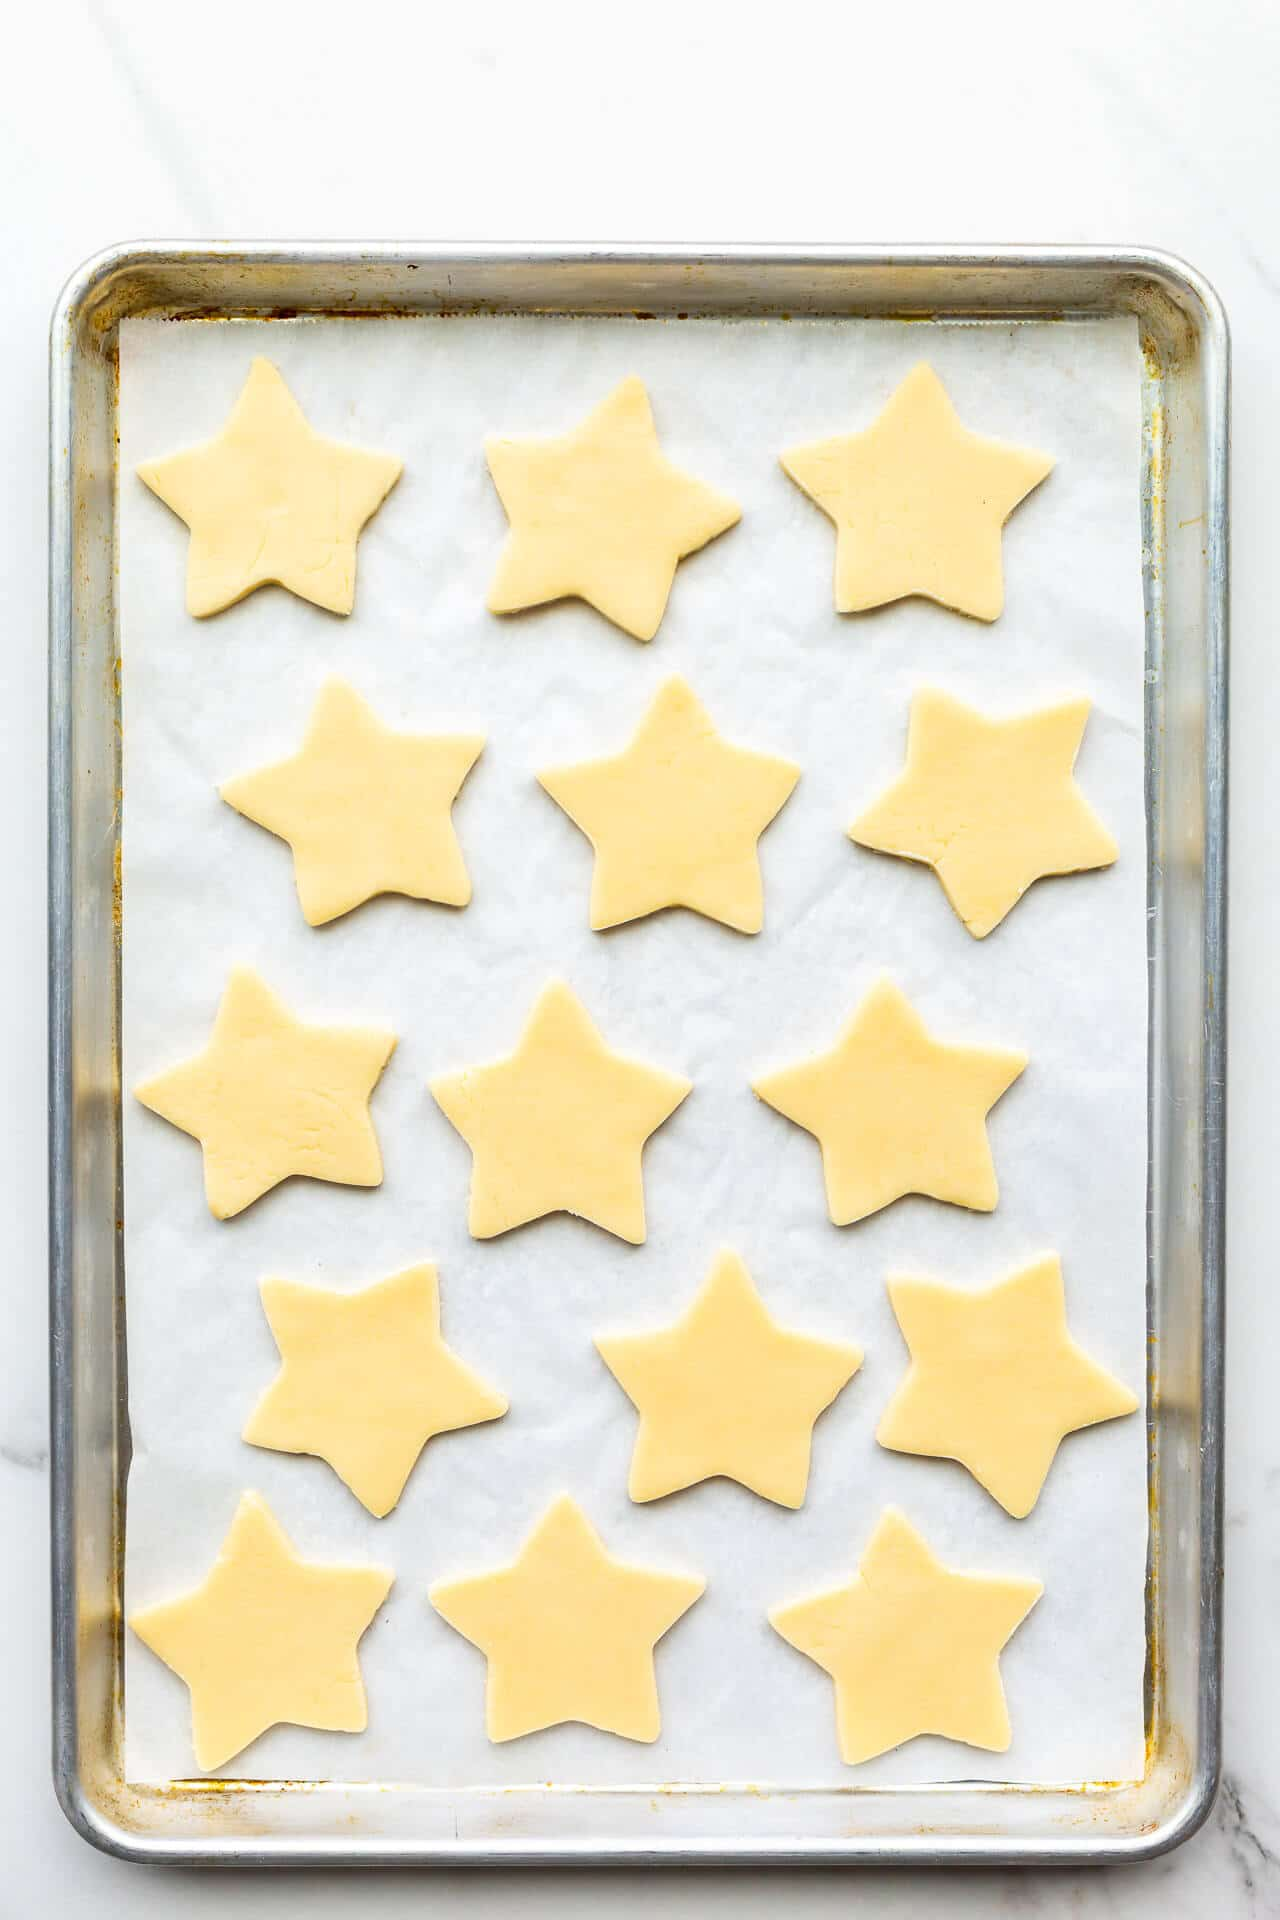 A sheet pan of cut out shortbread cookie stars ready to be baked.